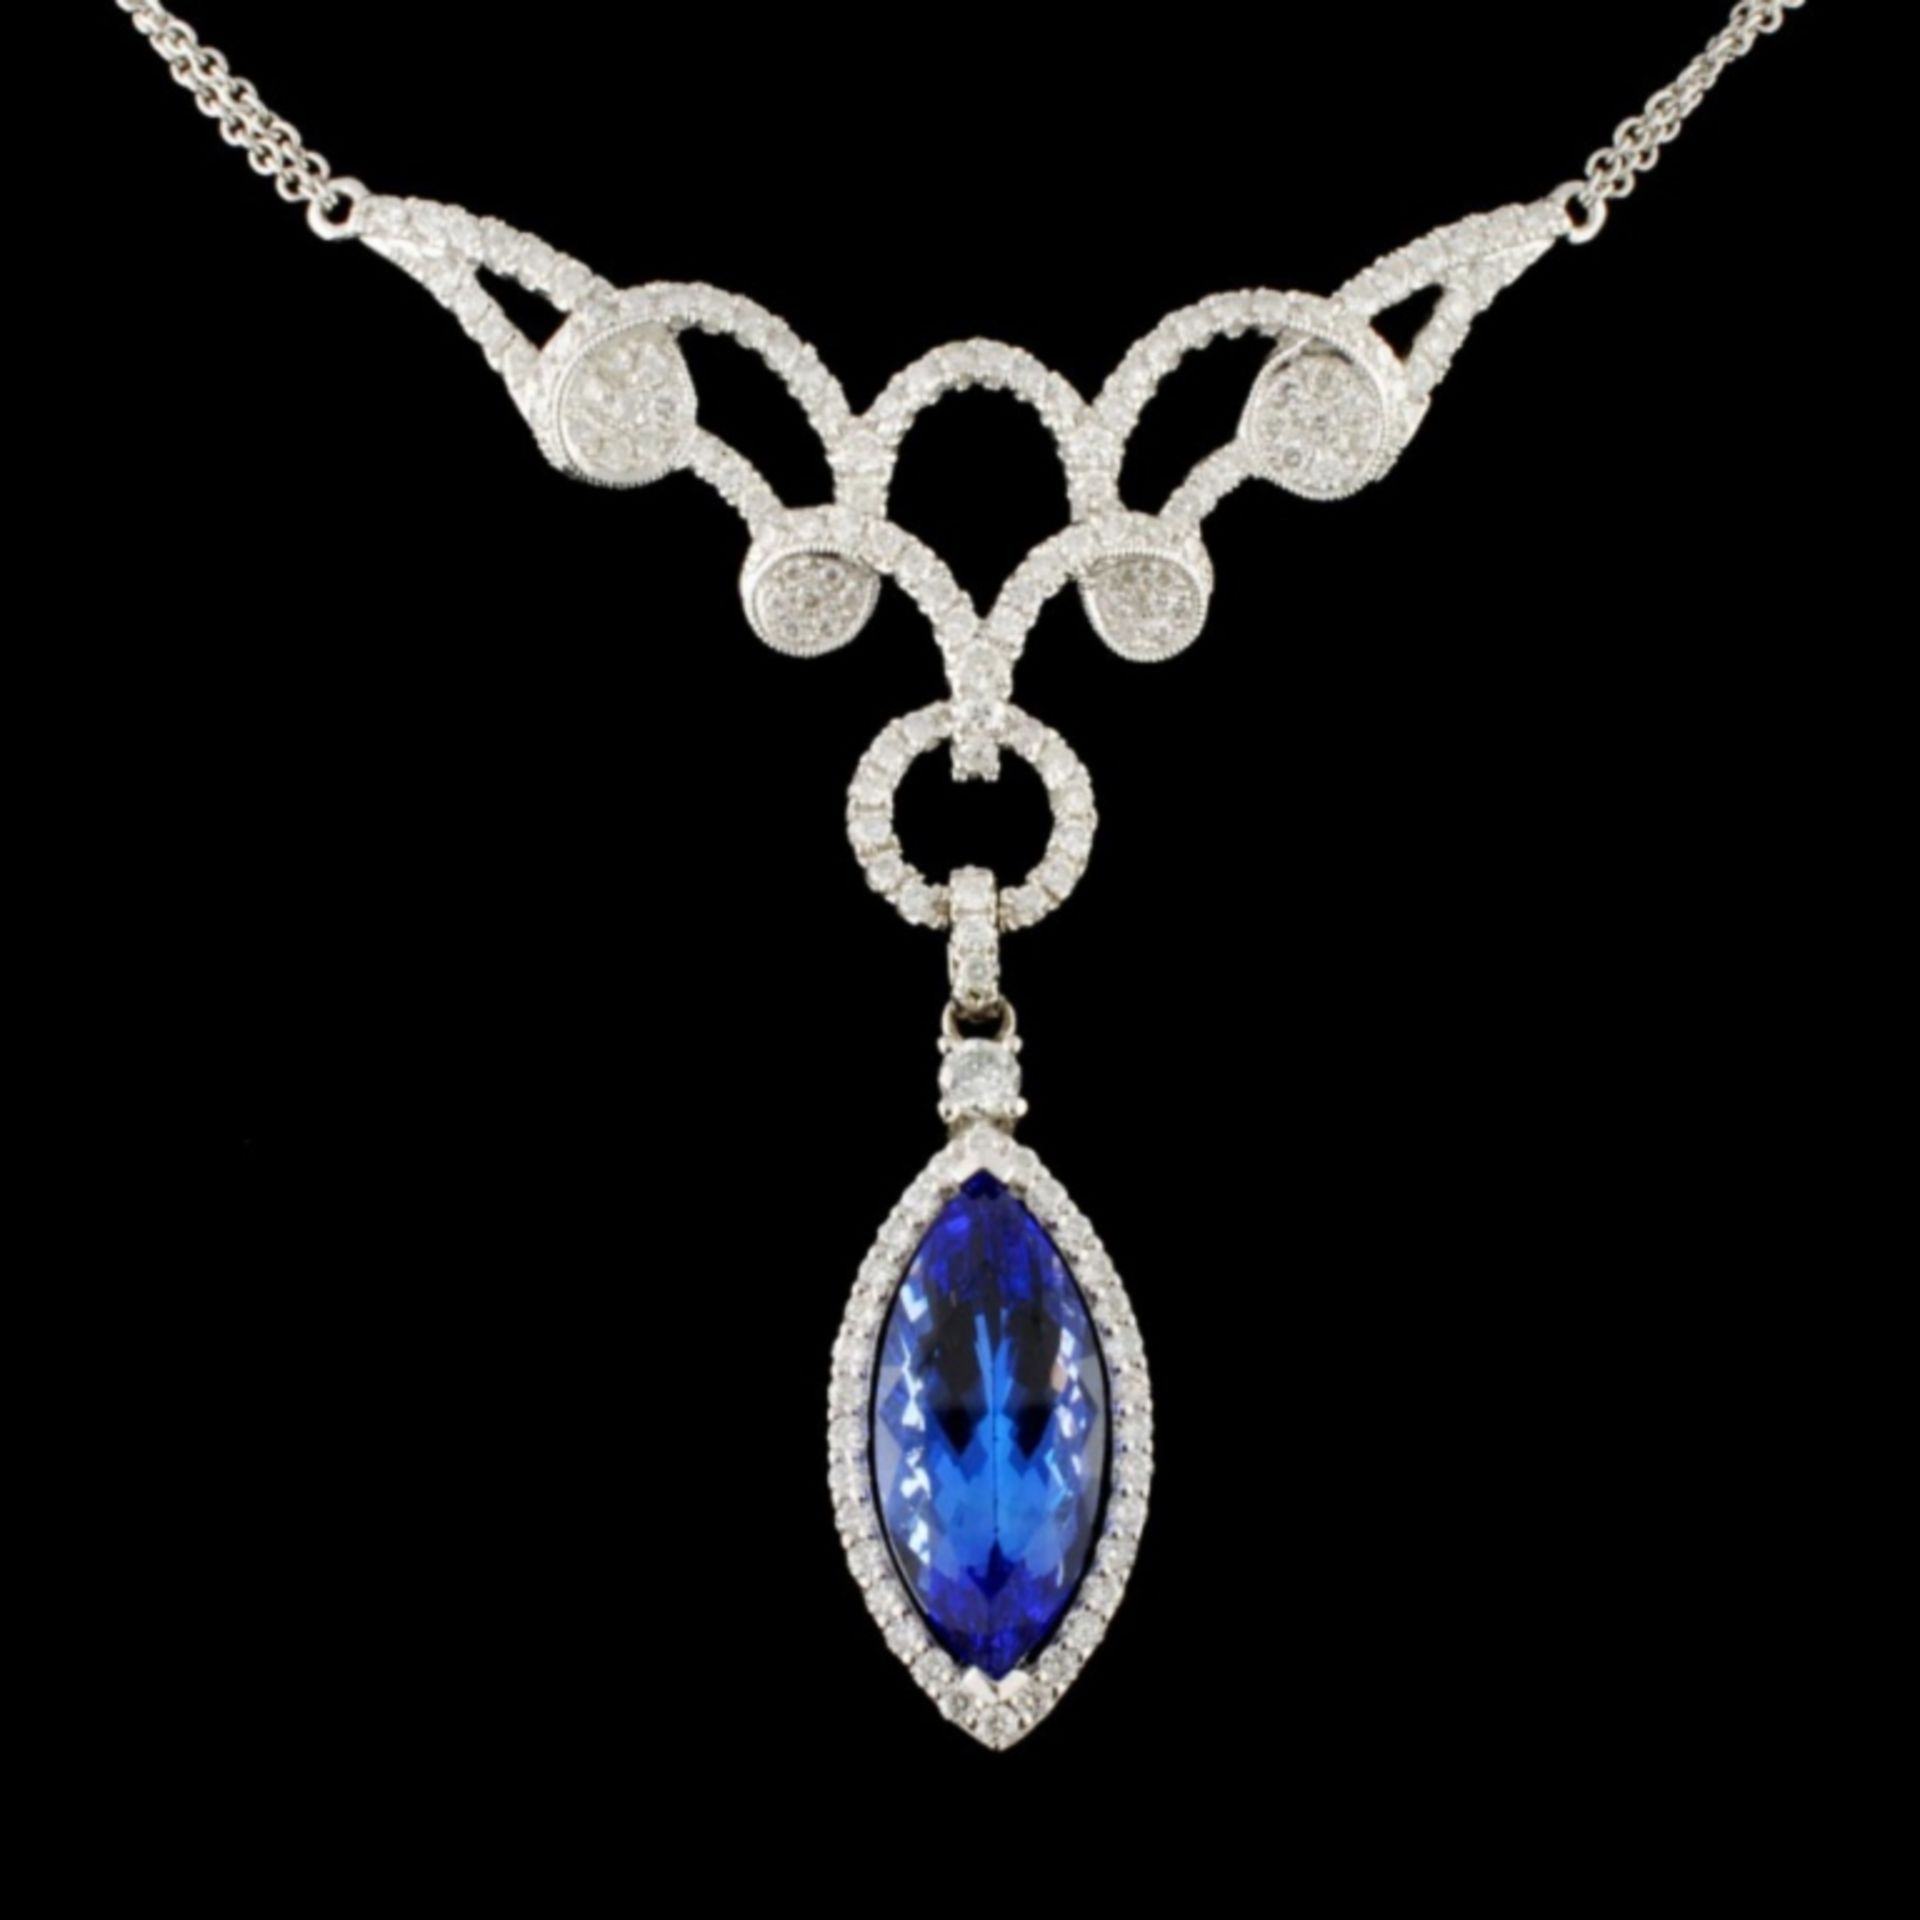 14K Gold 5.20ct Tanzanite & 1.60ctw Diamond Neckla - Image 2 of 4